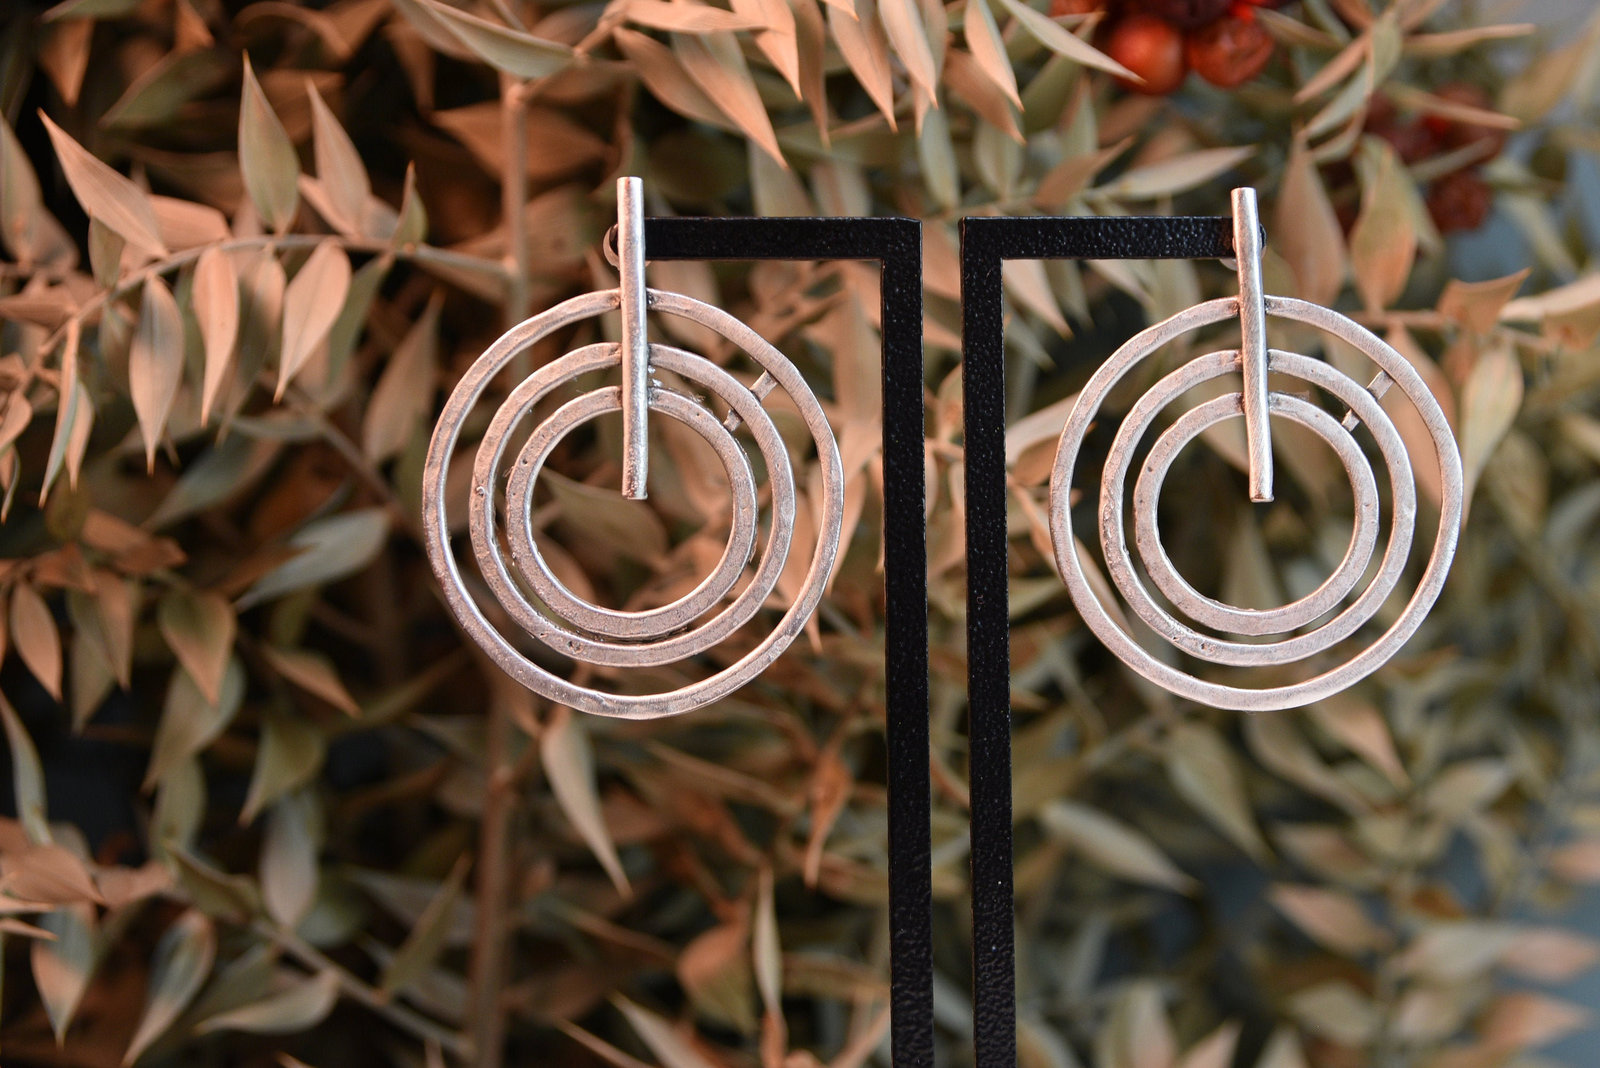 Primary image for Unique Spiral earrings,Fancy gold earrings, Silver Earrings, Minimalist Jewelry,